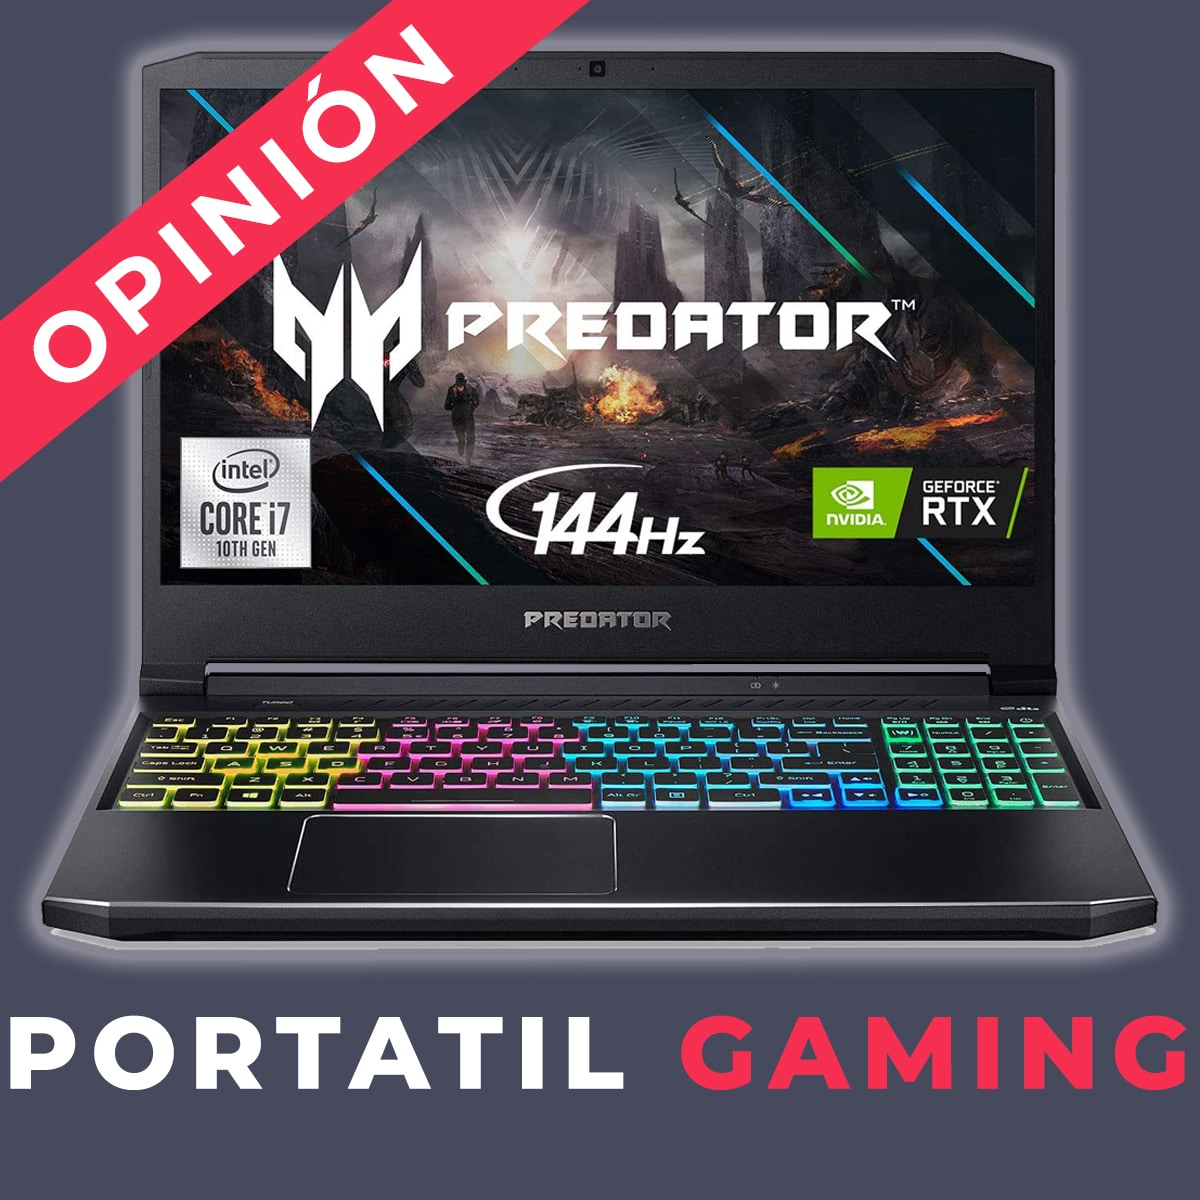 portatil gaming